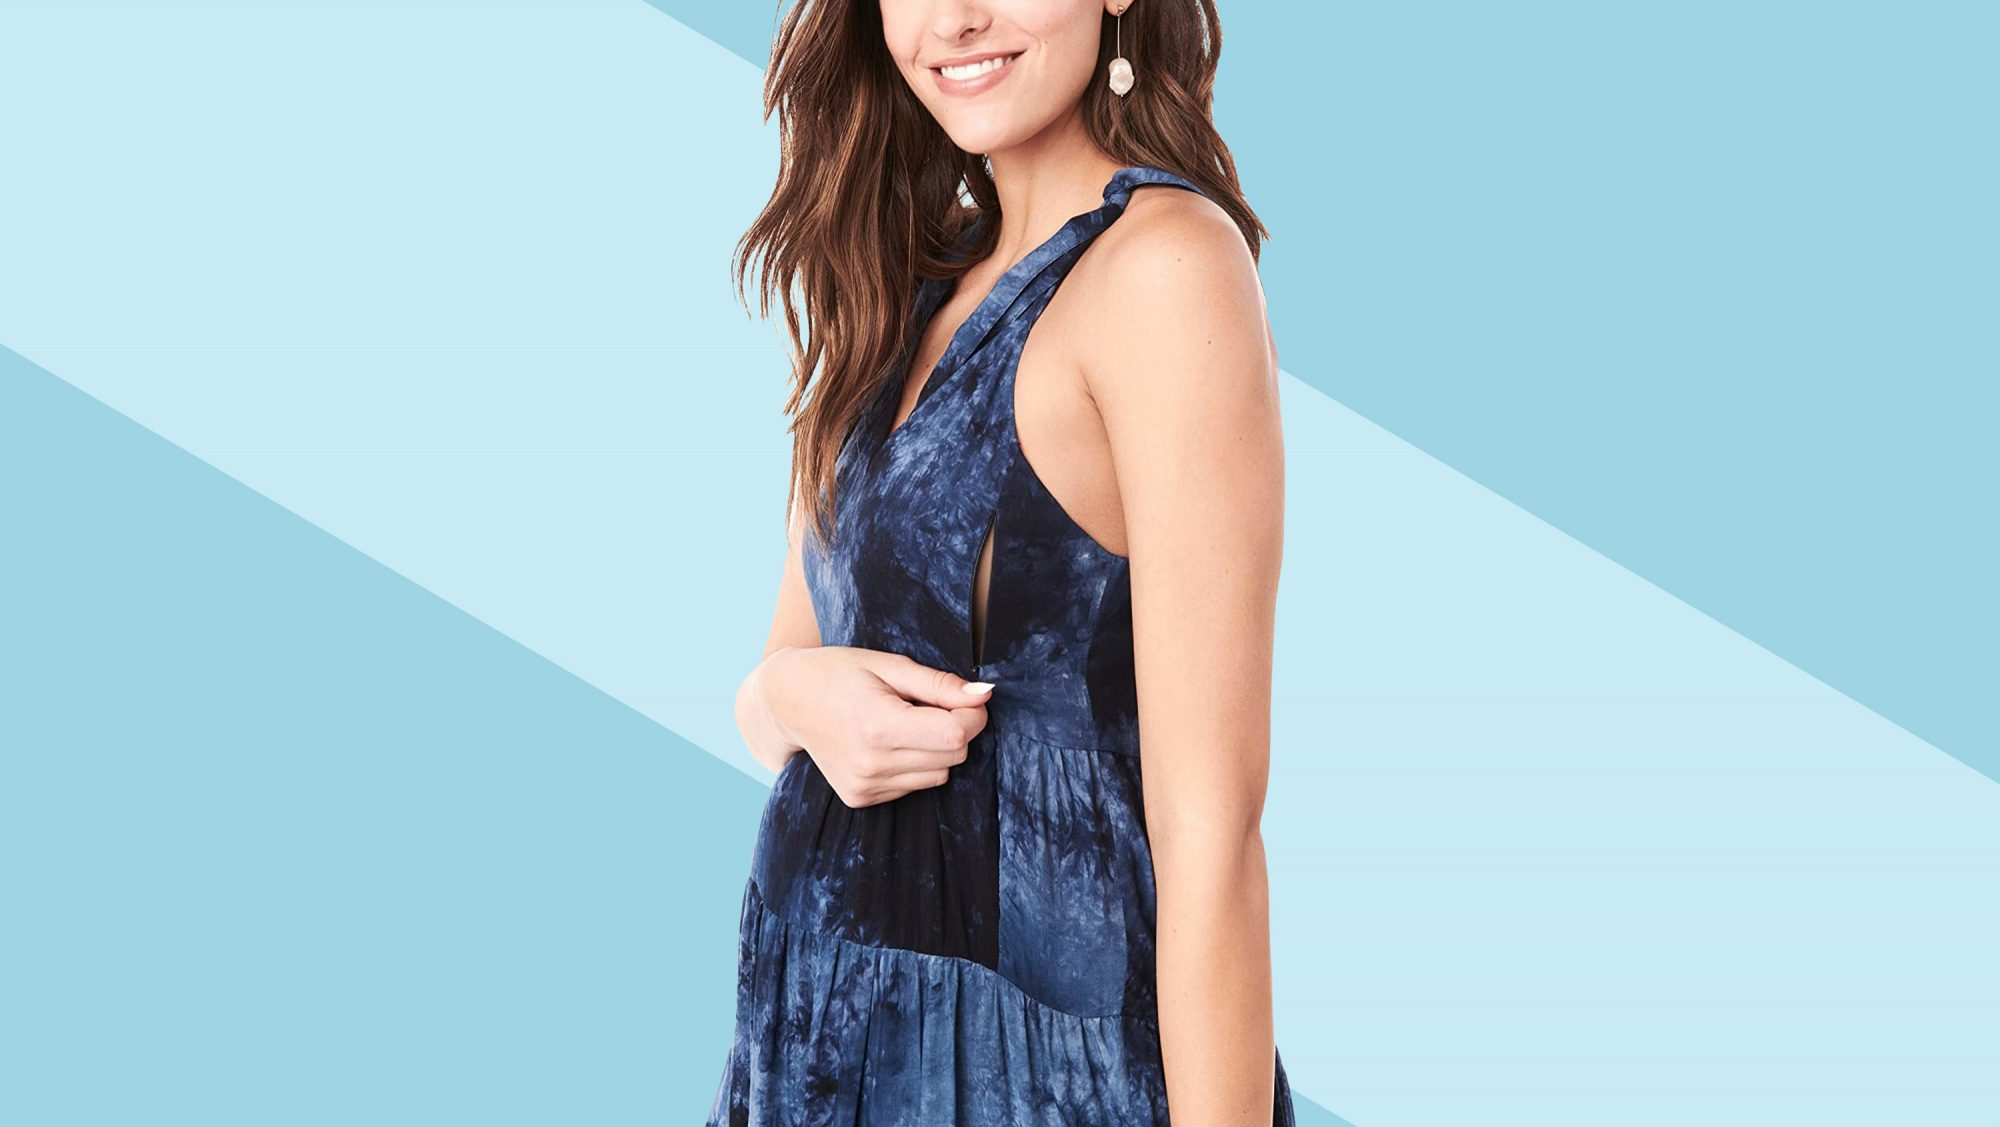 Zappos Maternity Section: woman in pregnancy dress